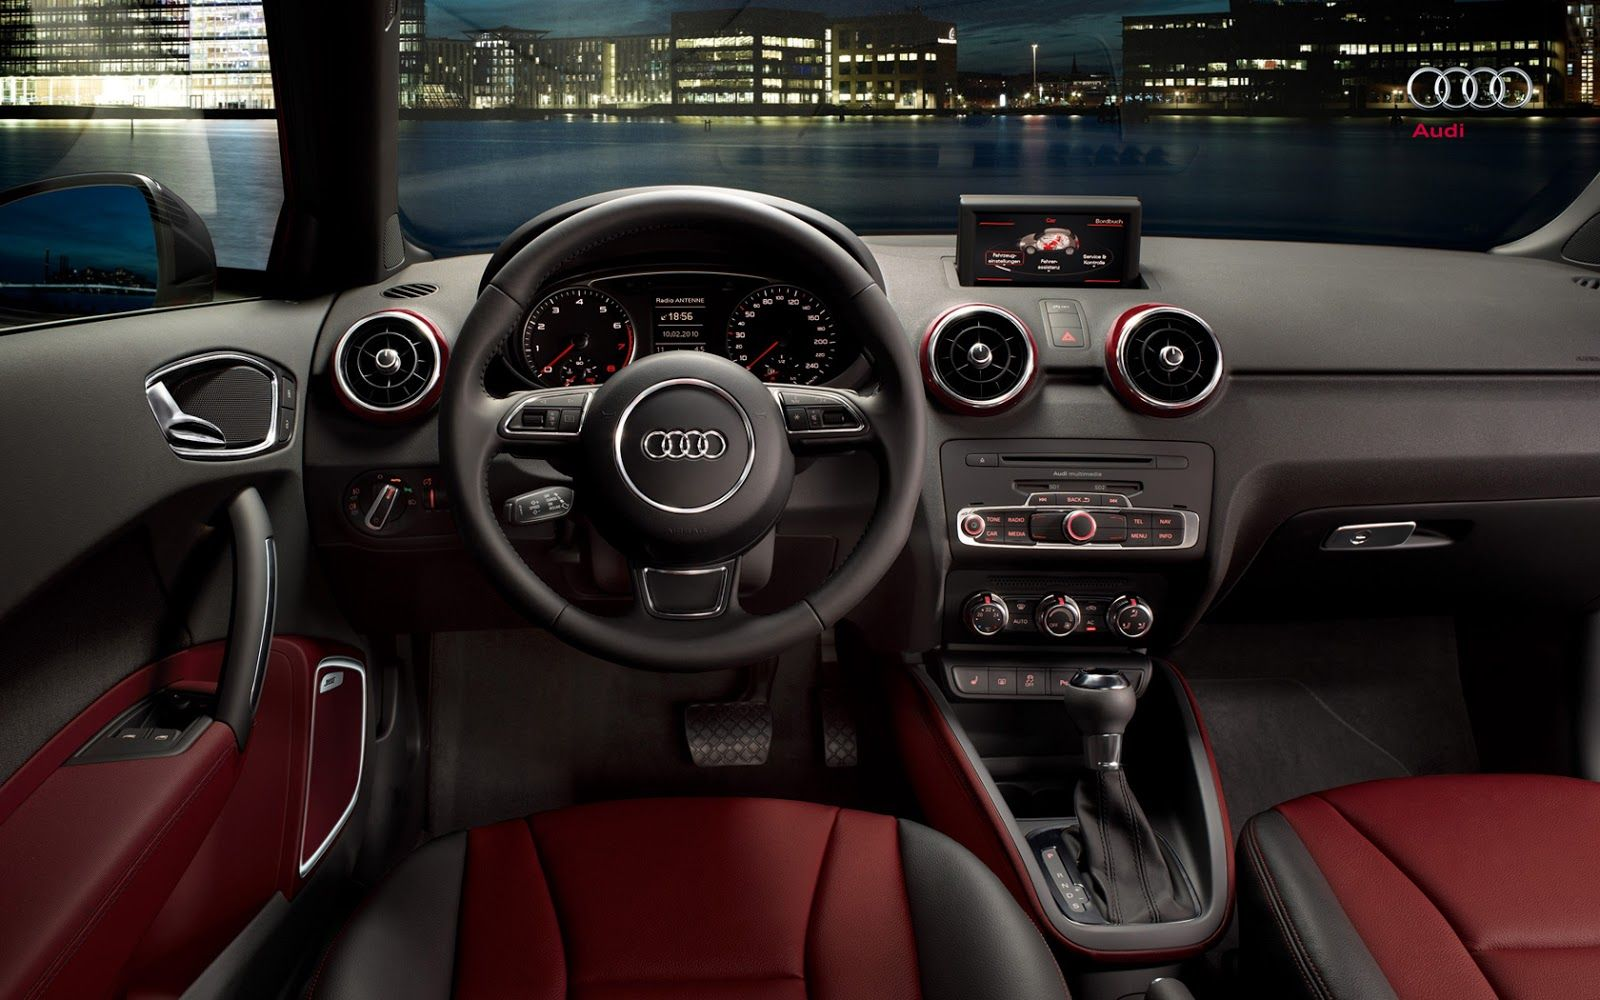 Audi A1 Luxuary Small Car Interior Cockpit Steering Dashboard